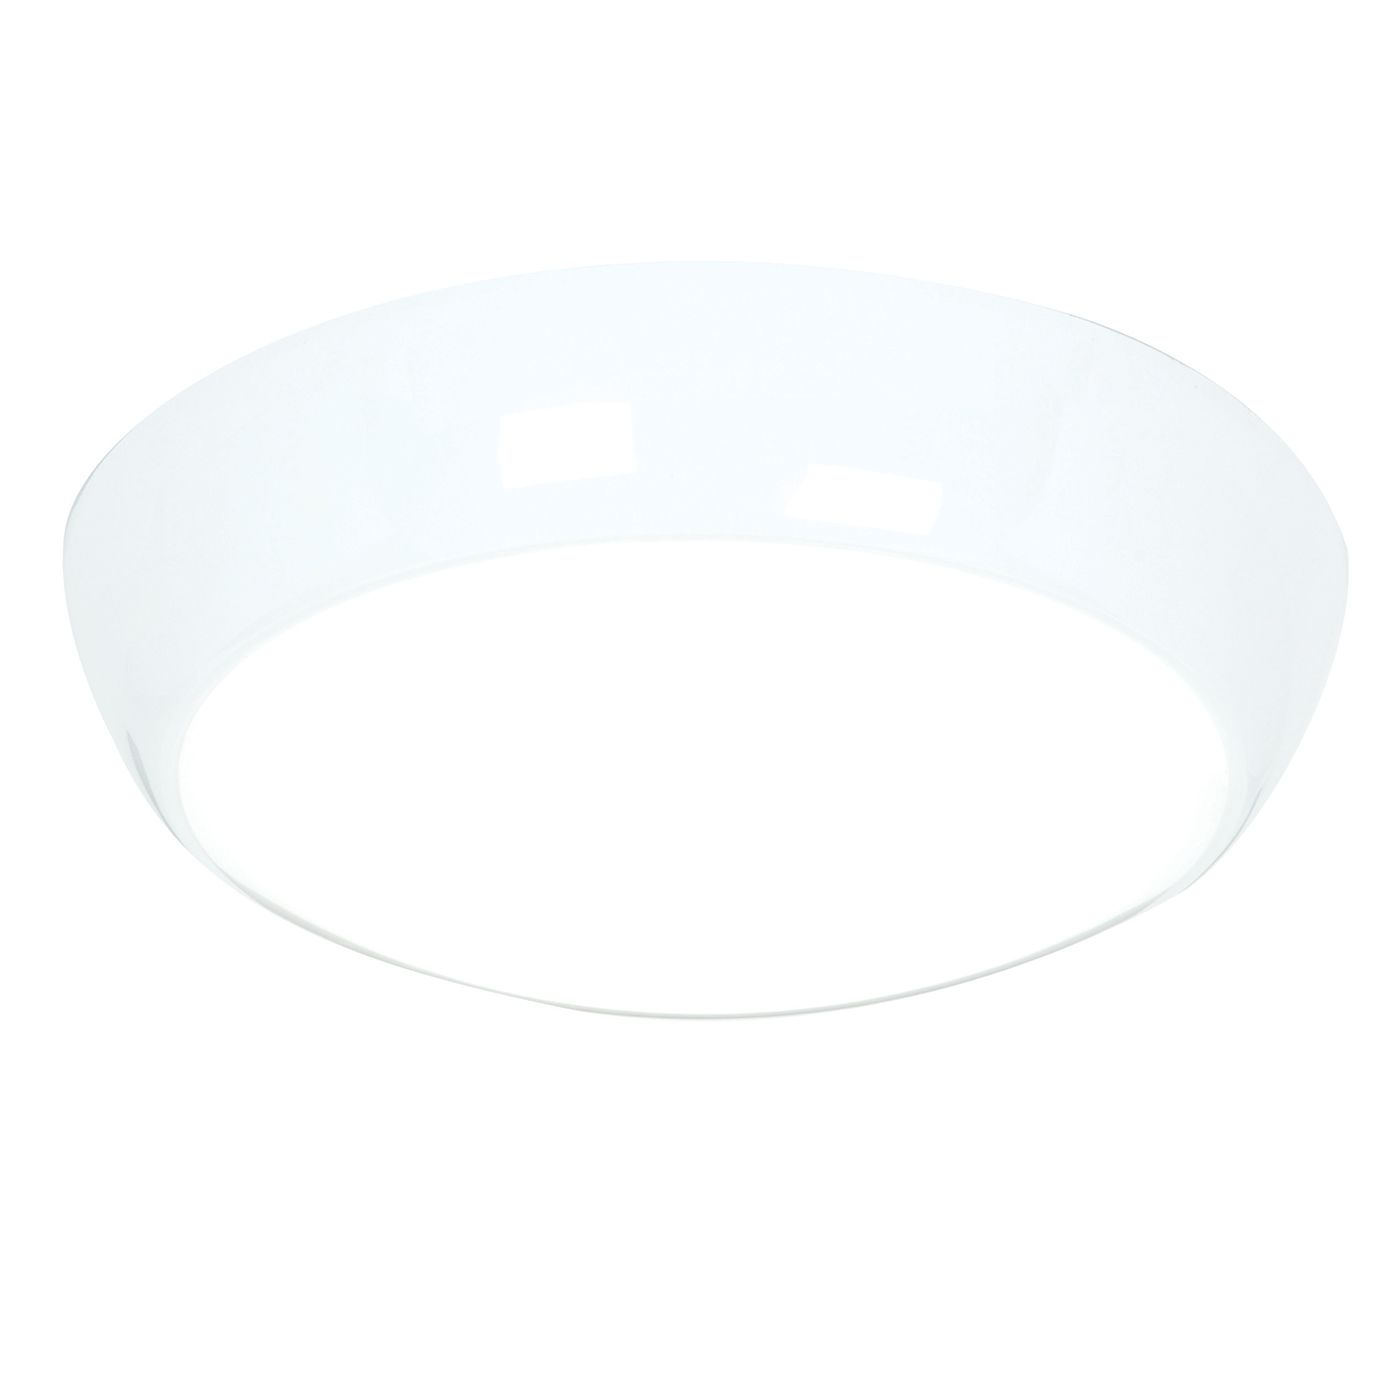 Lampa sufitowa Vigor LED 325 - Saxby Lighting - biała